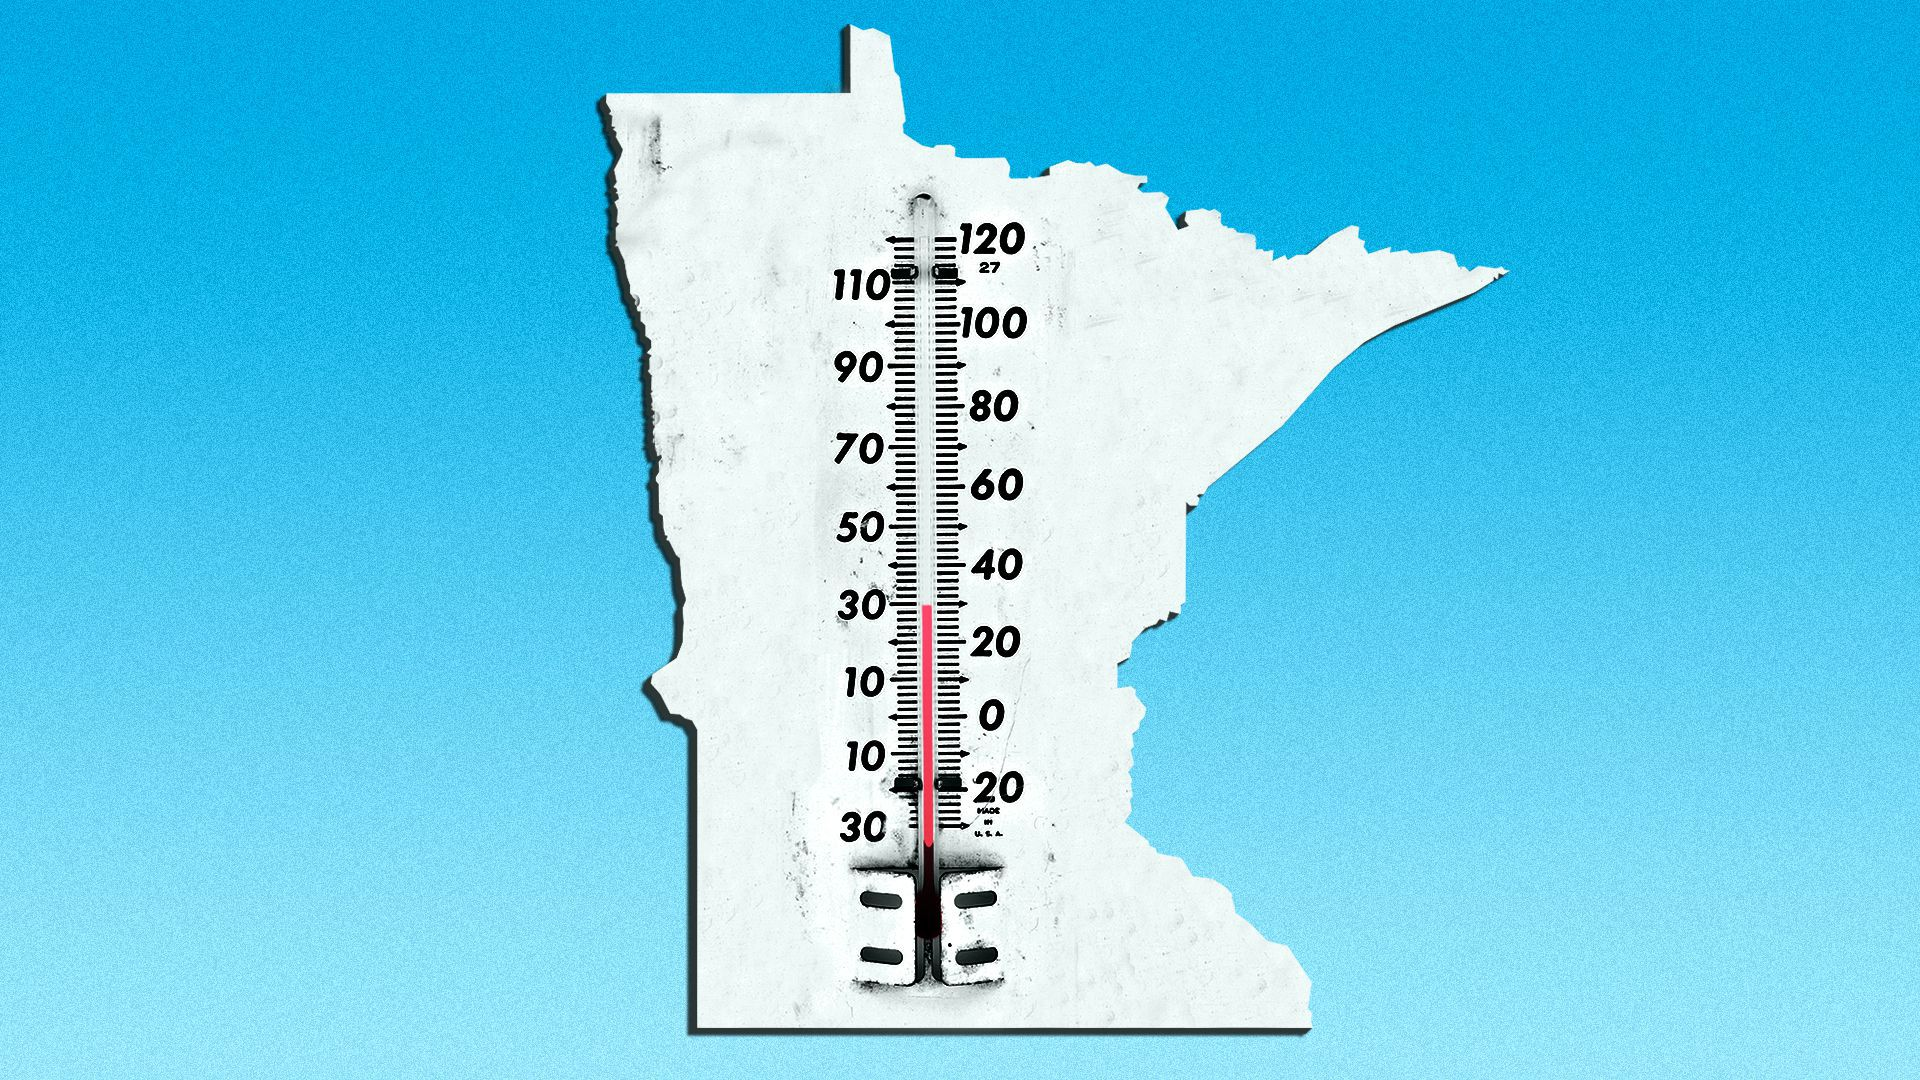 Illustration of a thermometer in the shape of Minnesota registering 30 degrees.